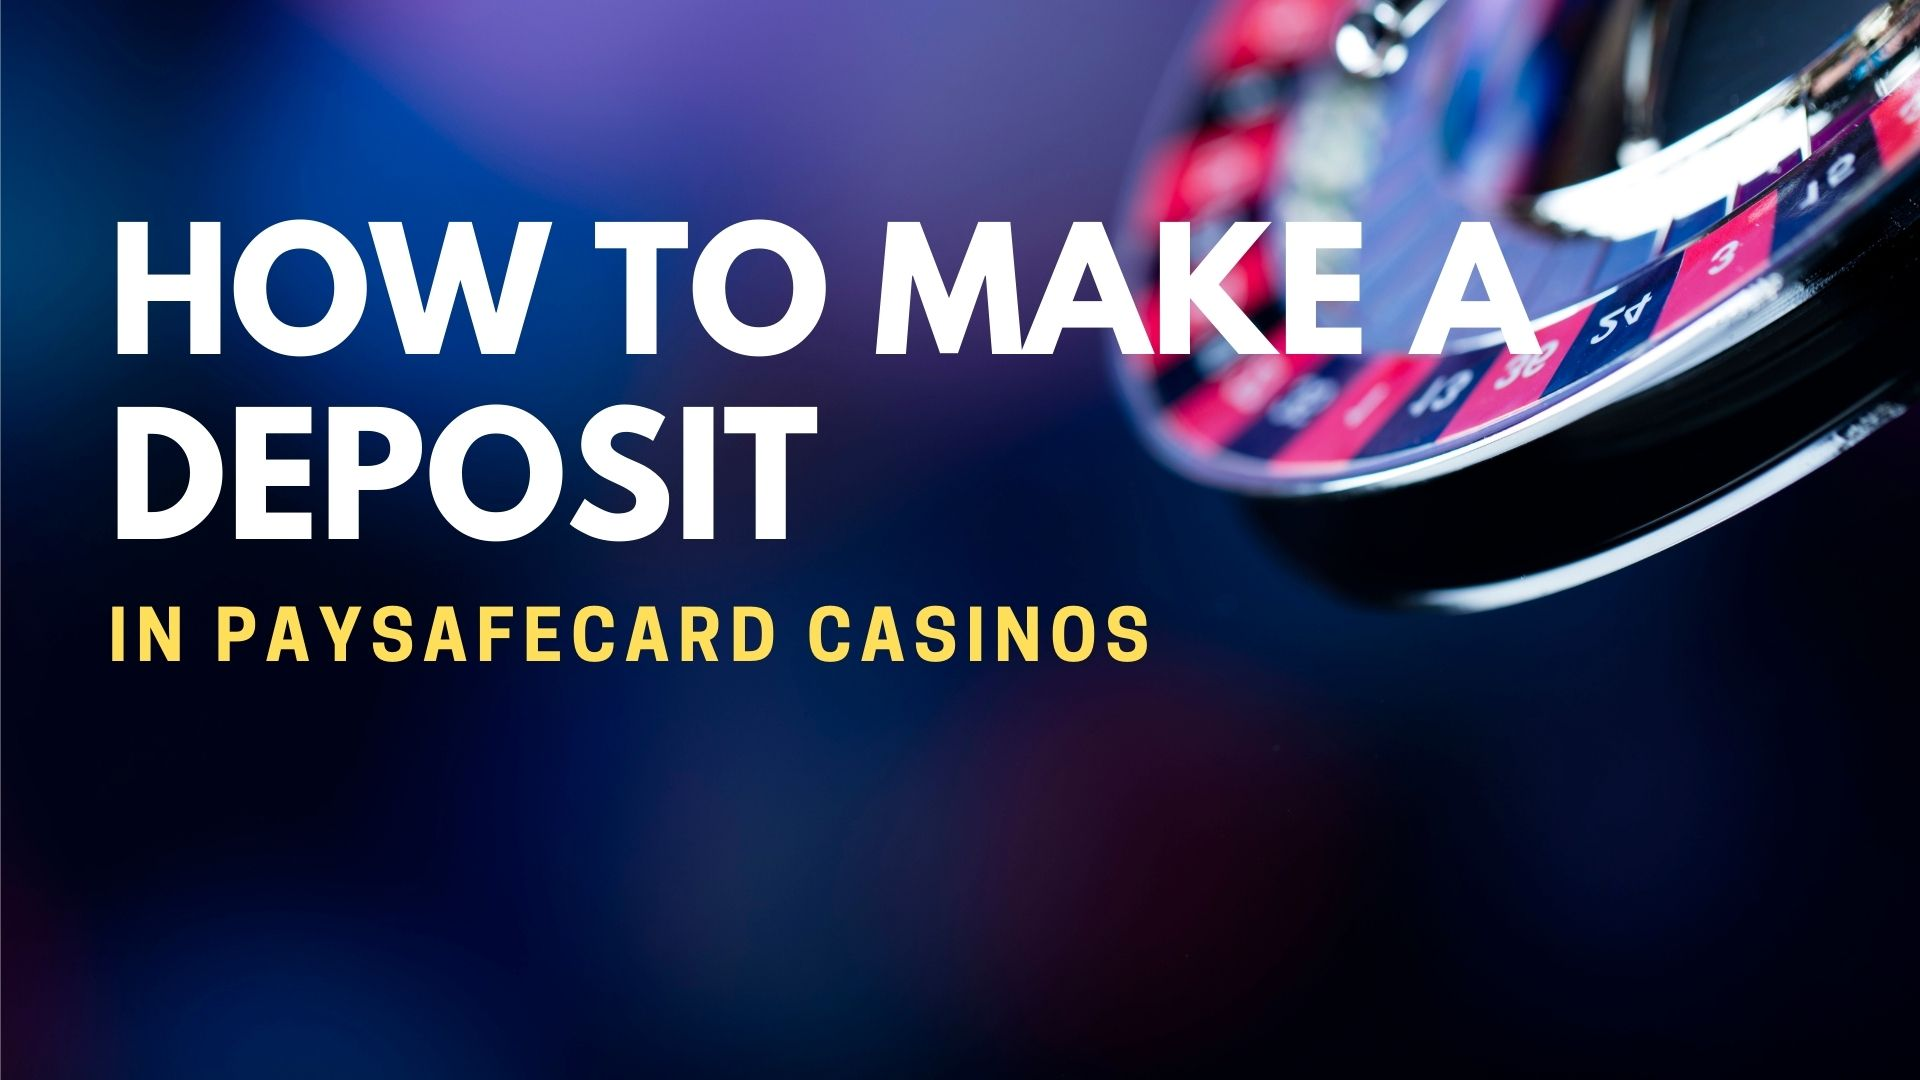 How To Make A Deposit In Paysafecard Casinos